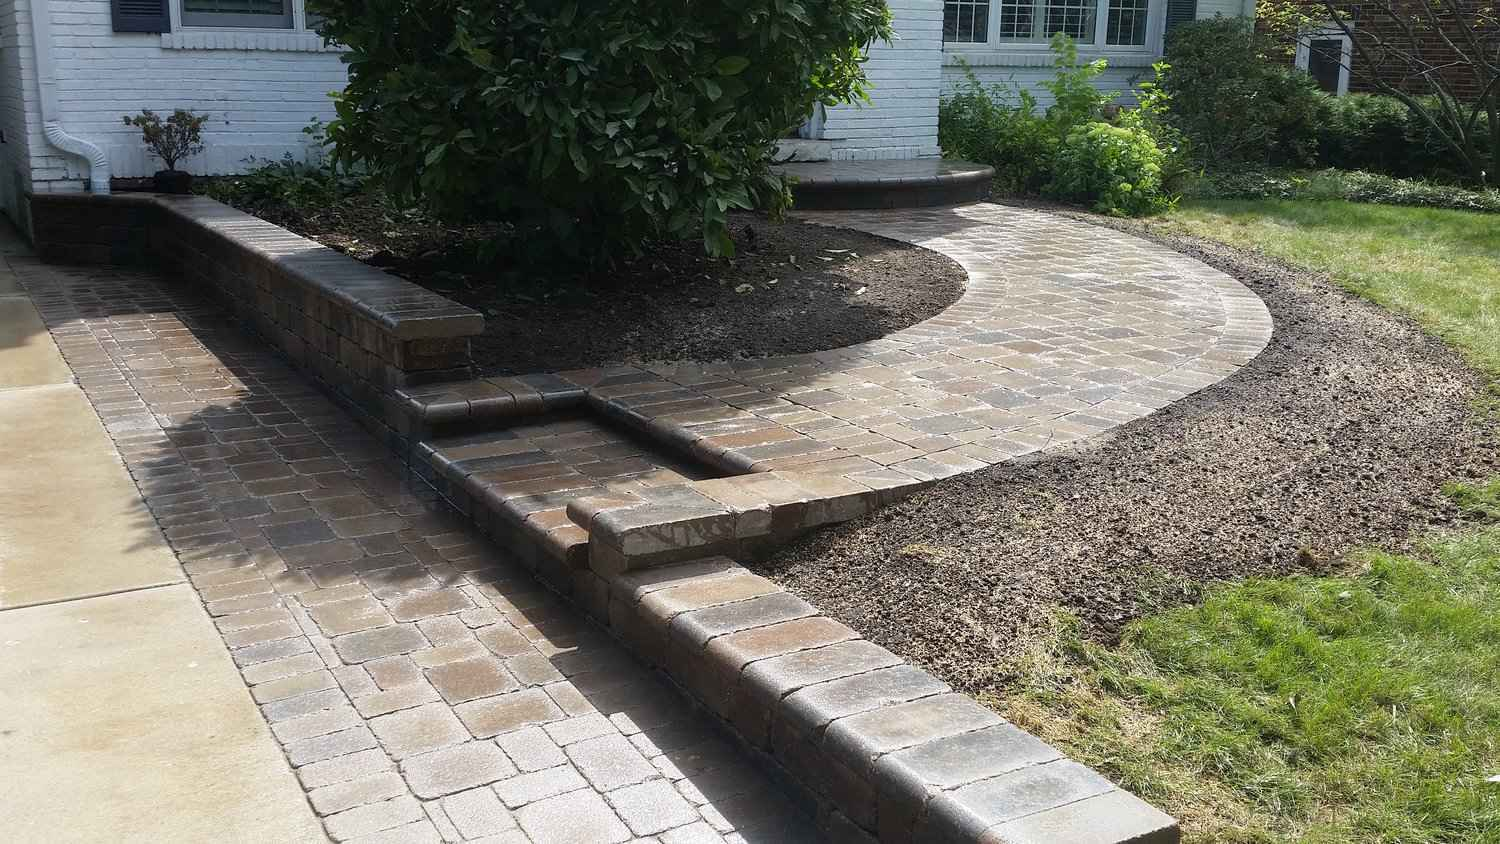 Kennedale-Arlington TX Professional Landscapers & Outdoor Living Designs-We offer Landscape Design, Outdoor Patios & Pergolas, Outdoor Living Spaces, Stonescapes, Residential & Commercial Landscaping, Irrigation Installation & Repairs, Drainage Systems, Landscape Lighting, Outdoor Living Spaces, Tree Service, Lawn Service, and more.